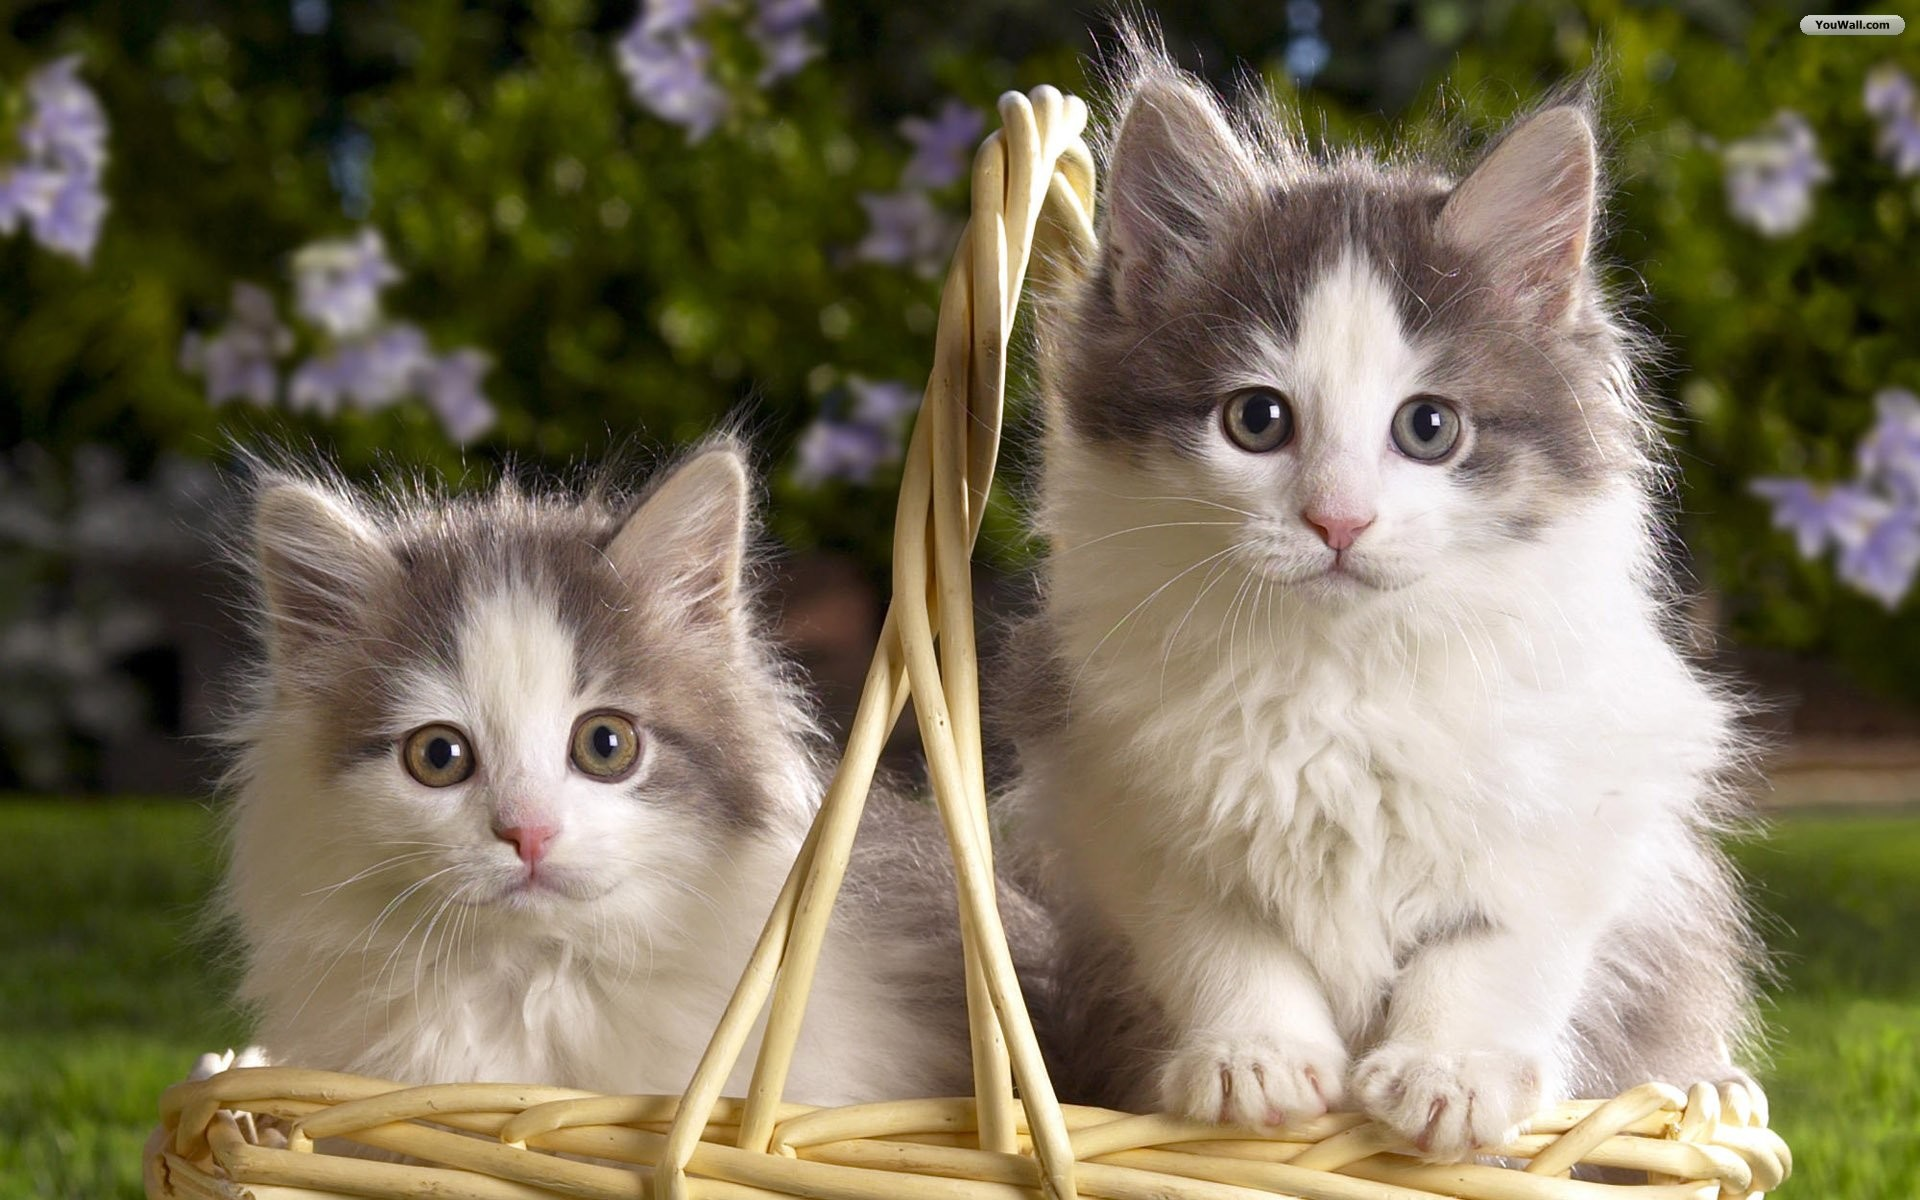 1920x1200 Cats · Cats Cute Cat And Kitten Cats Kittens Desktop Wallpaper